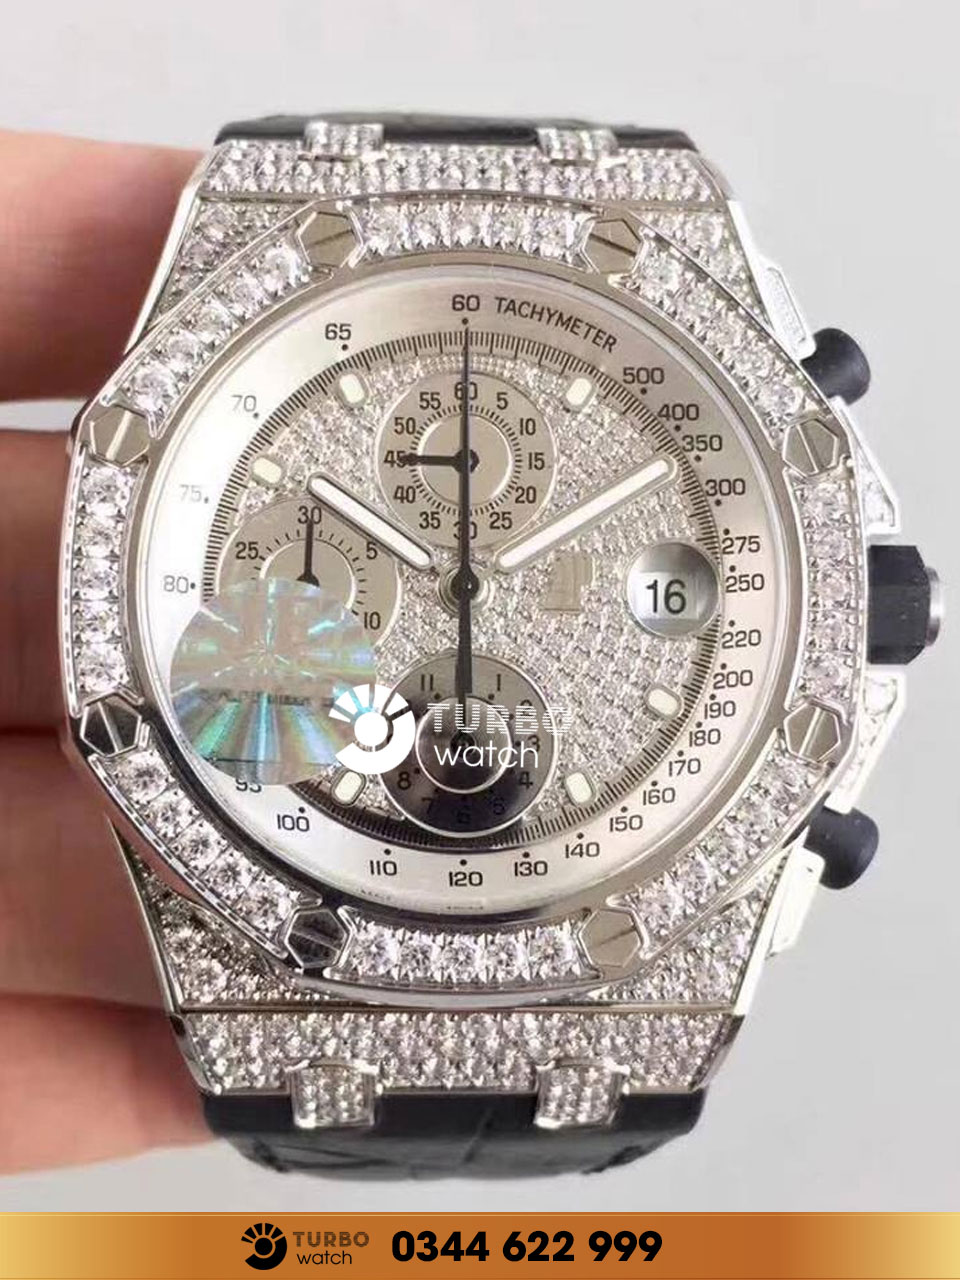 Audemars Piguet Royal Oak Offshore Chronograph Full Diamond